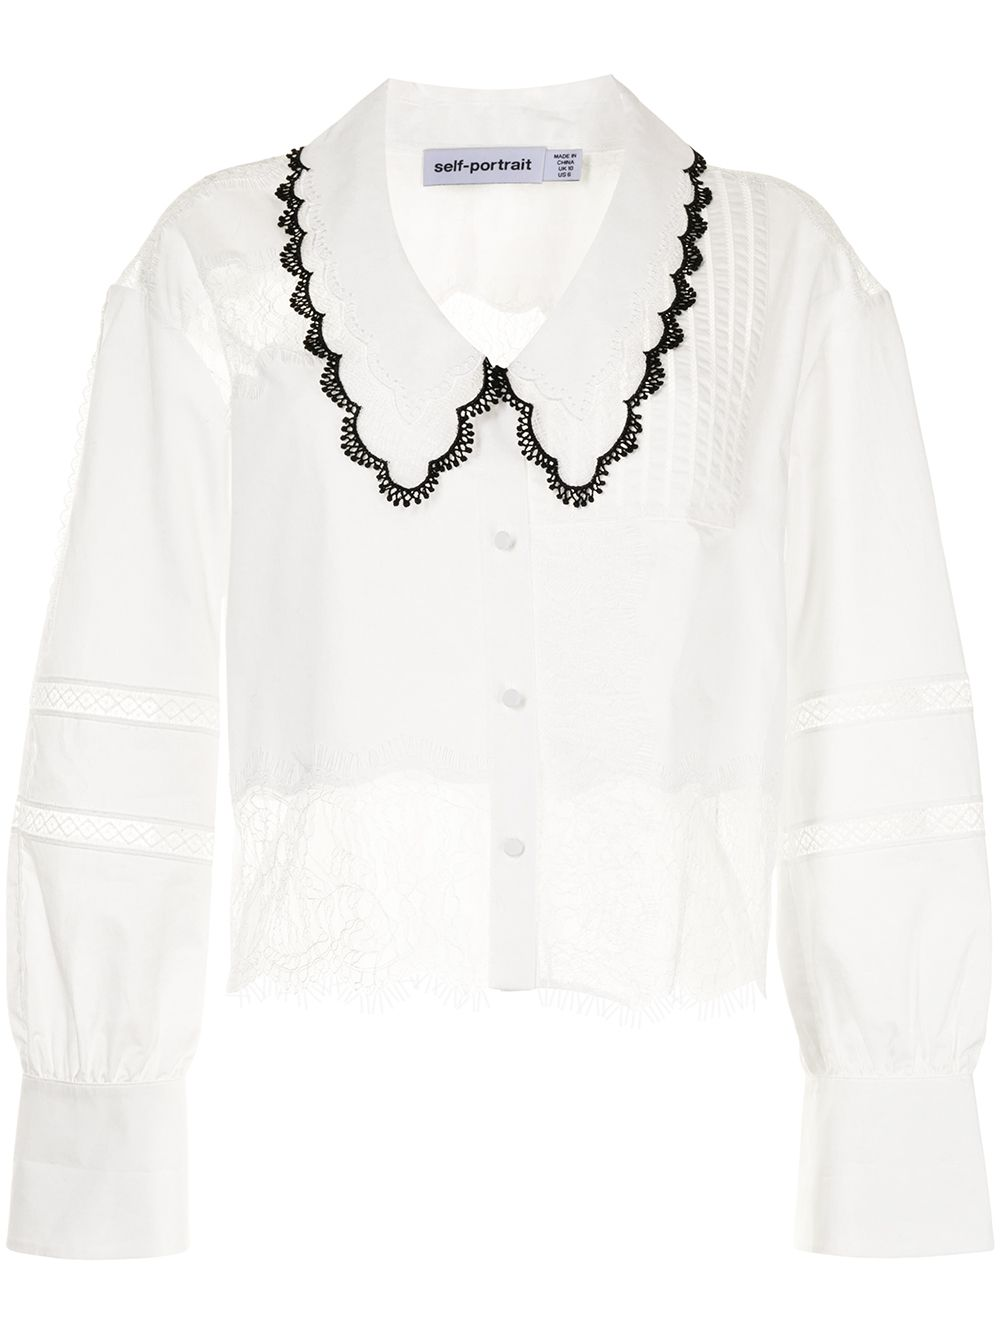 Self-Portrait Lace-panel Pointed-collar Shirt $346.00